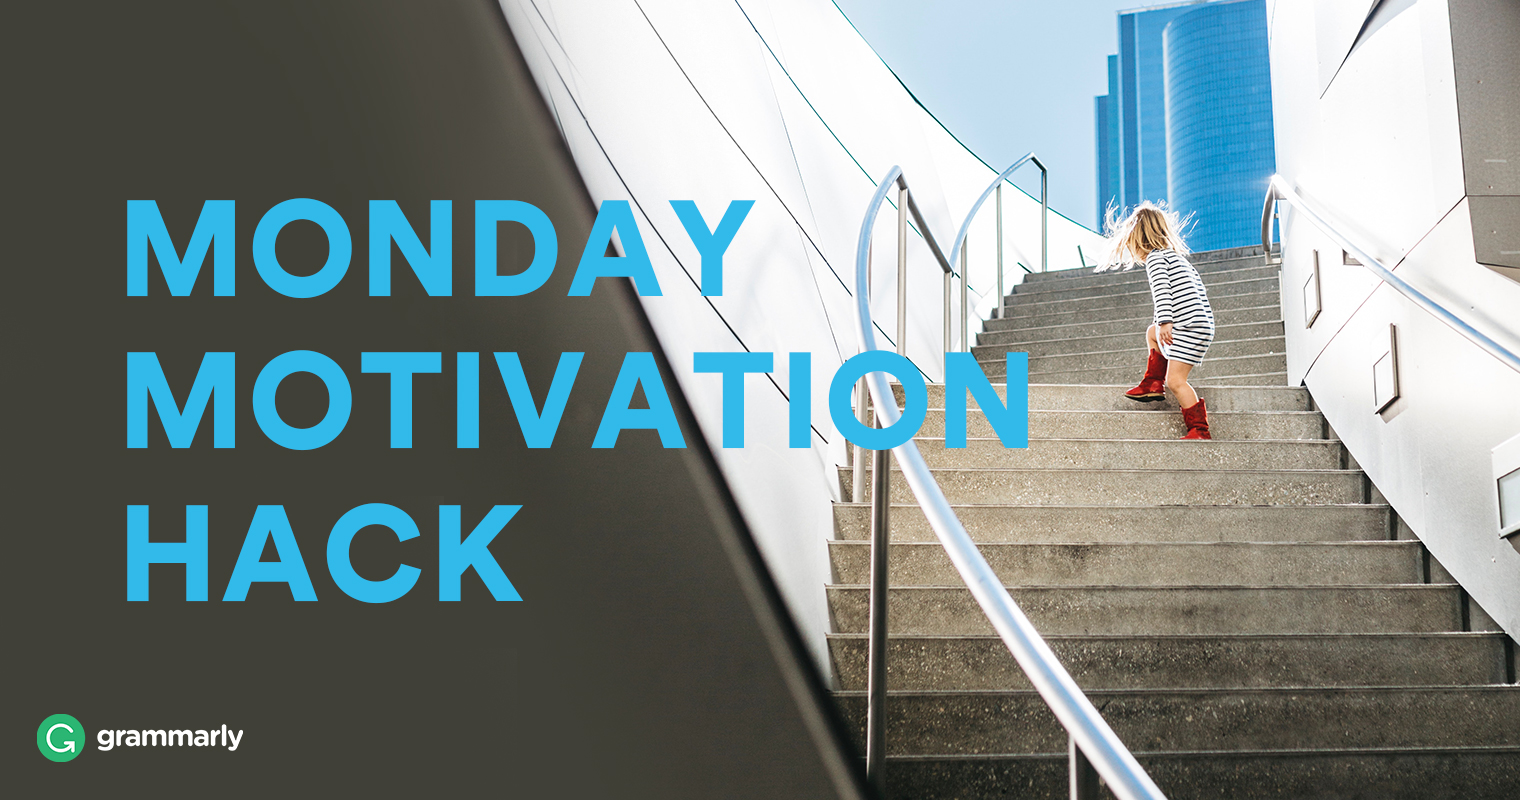 Monday Metavators: How Breaking Bad Habits Can Kick-start Your Week